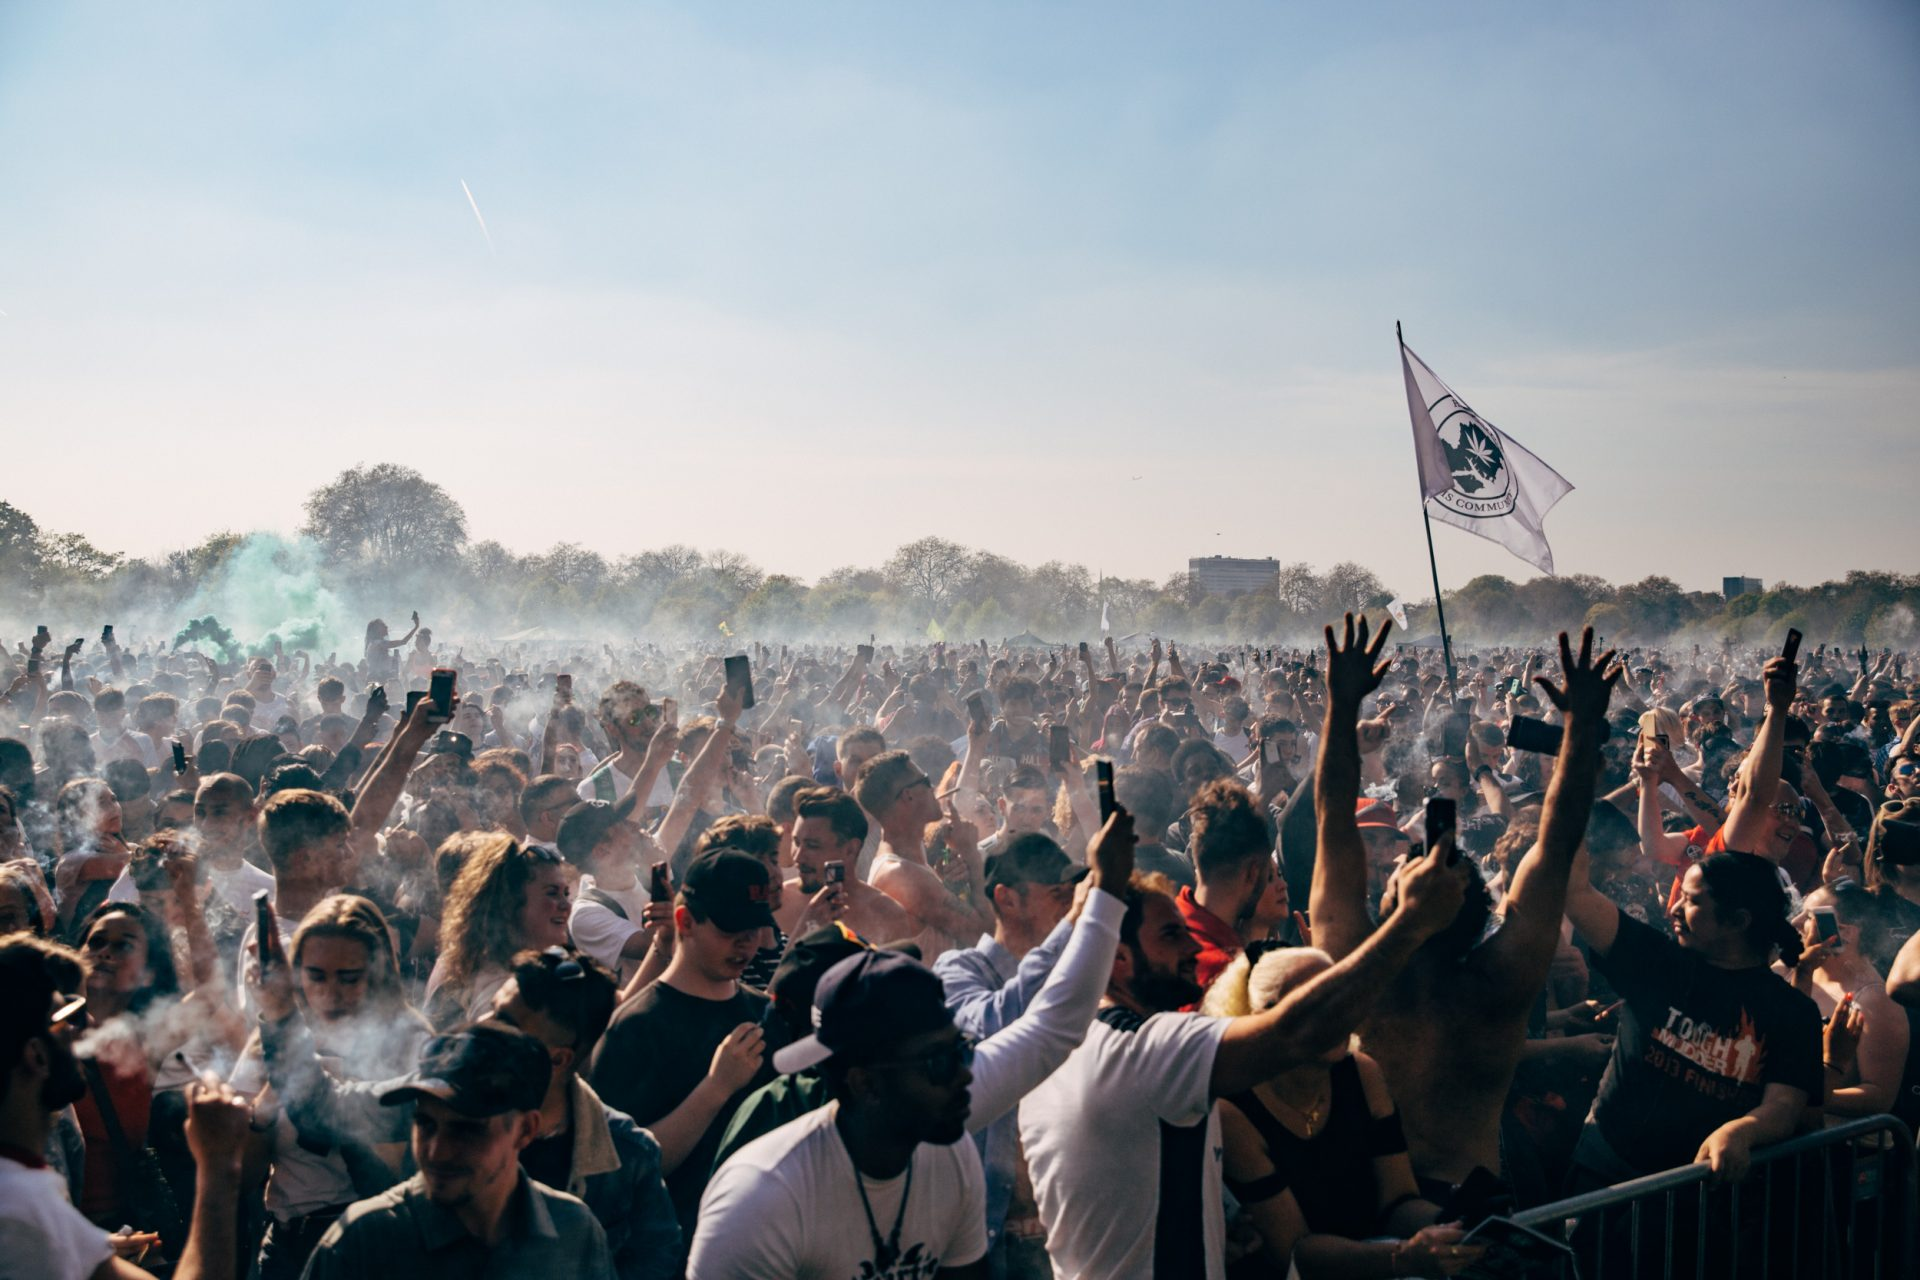 420 cannabis festival in hyde park